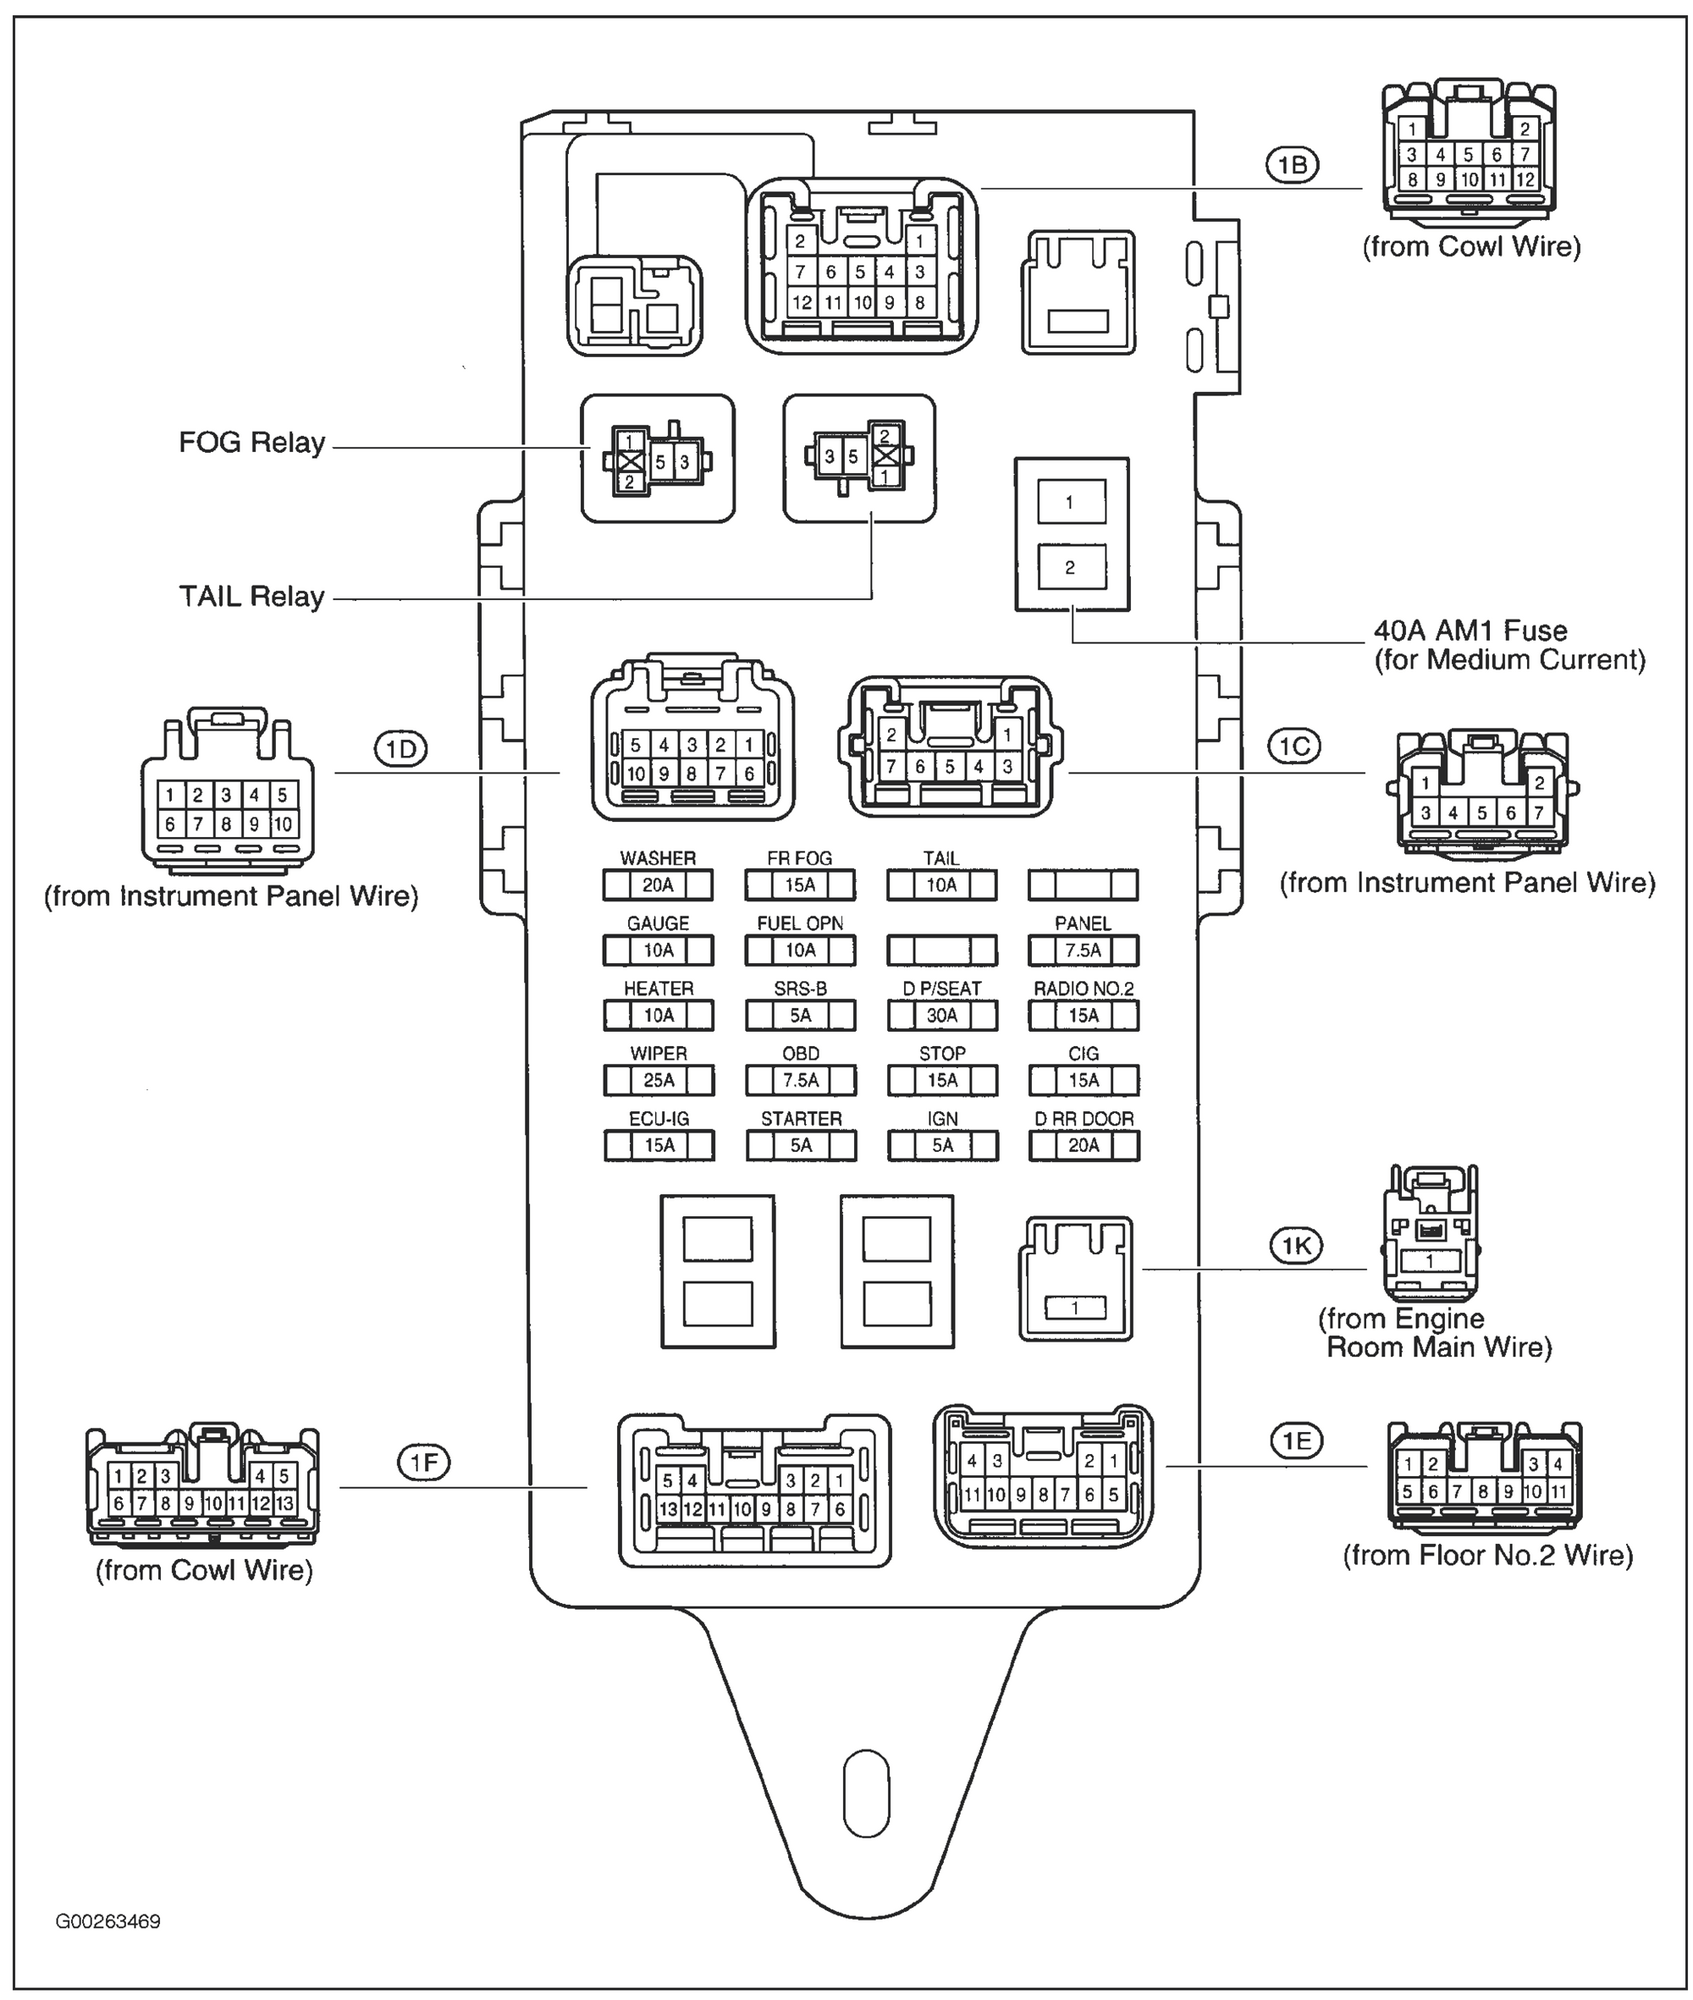 hight resolution of 2006 lexus gs300 fuse diagram 1998 lexus es300 1999 lexus es300 1998 lexus gs300 fuse box location 1998 lexus gs300 fuse diagram